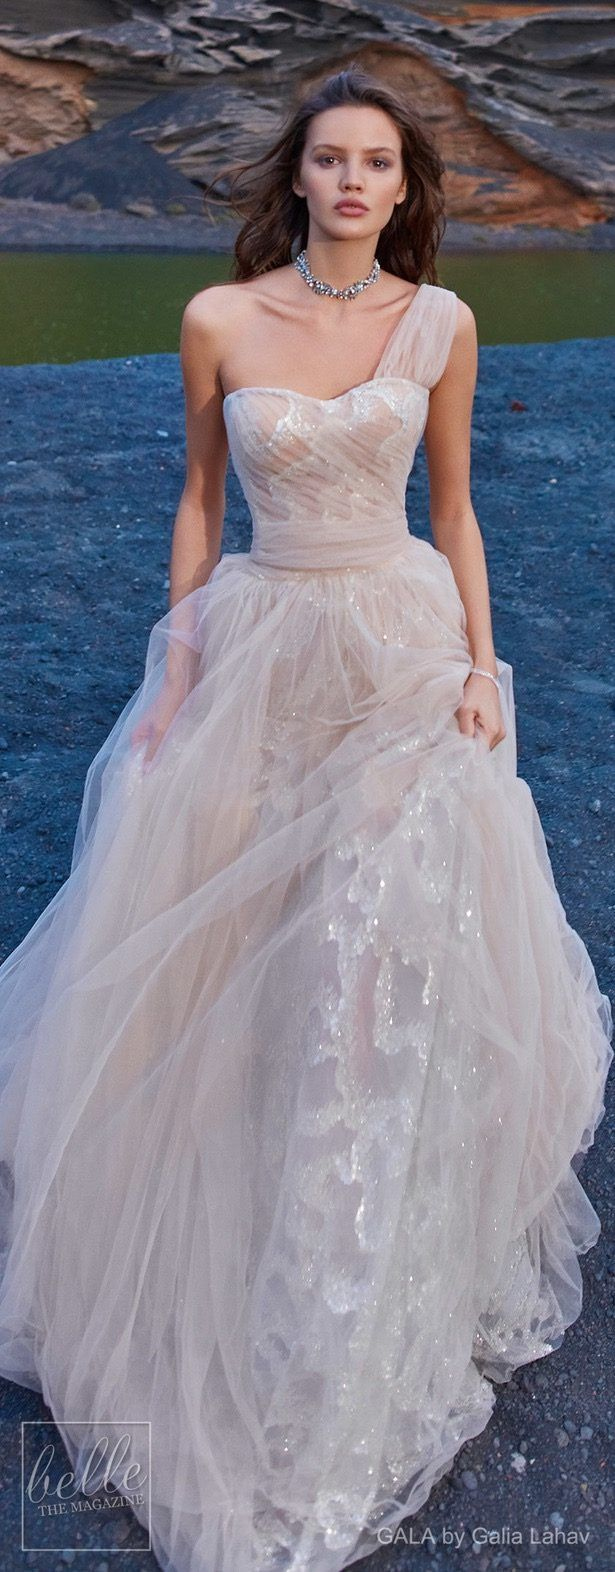 Gala by galia lahav wedding dress collection no wedding